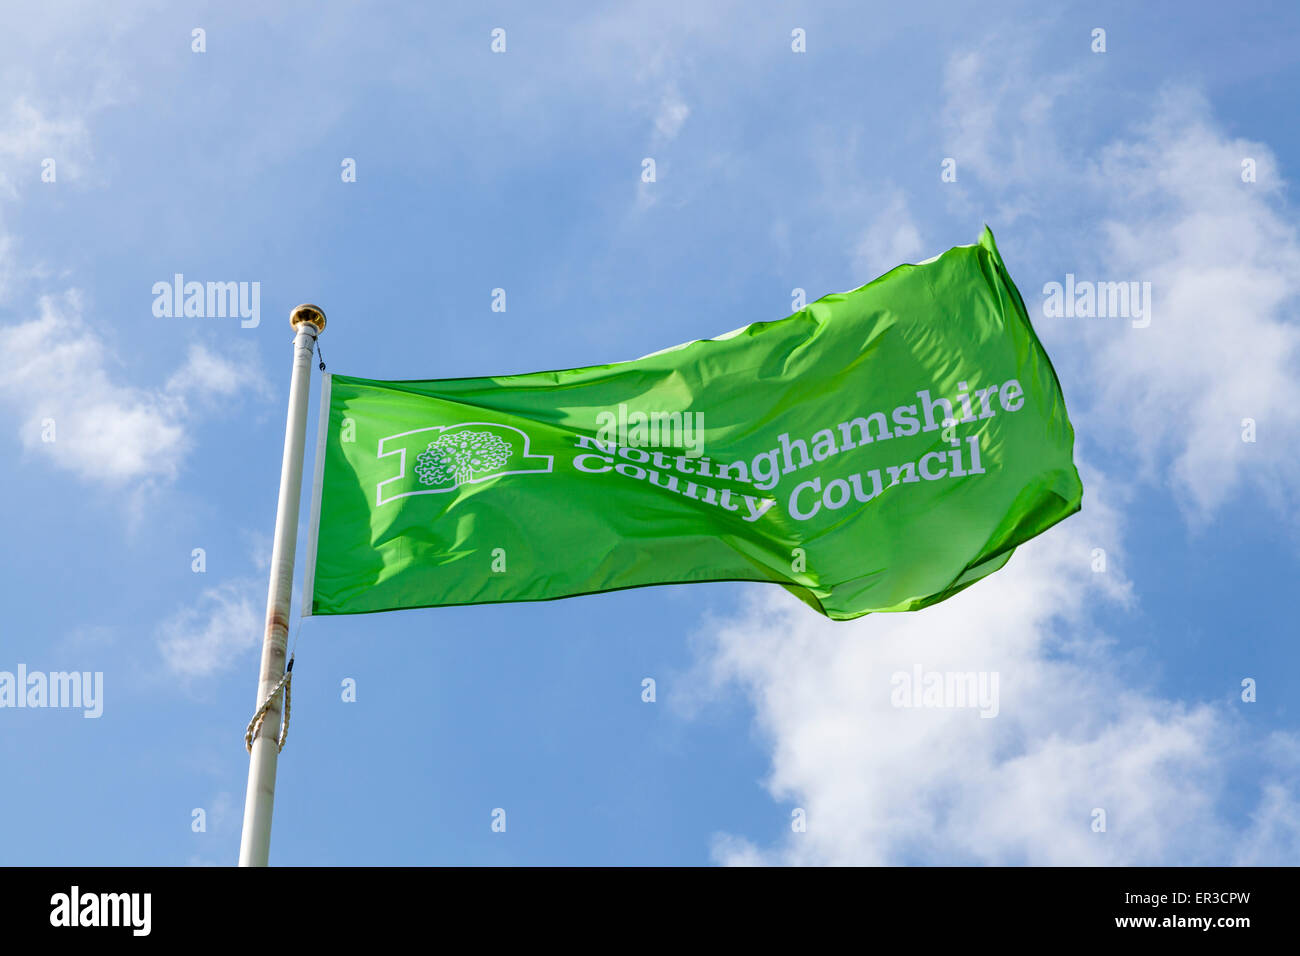 Nottinghamshire County Council flag - Stock Image